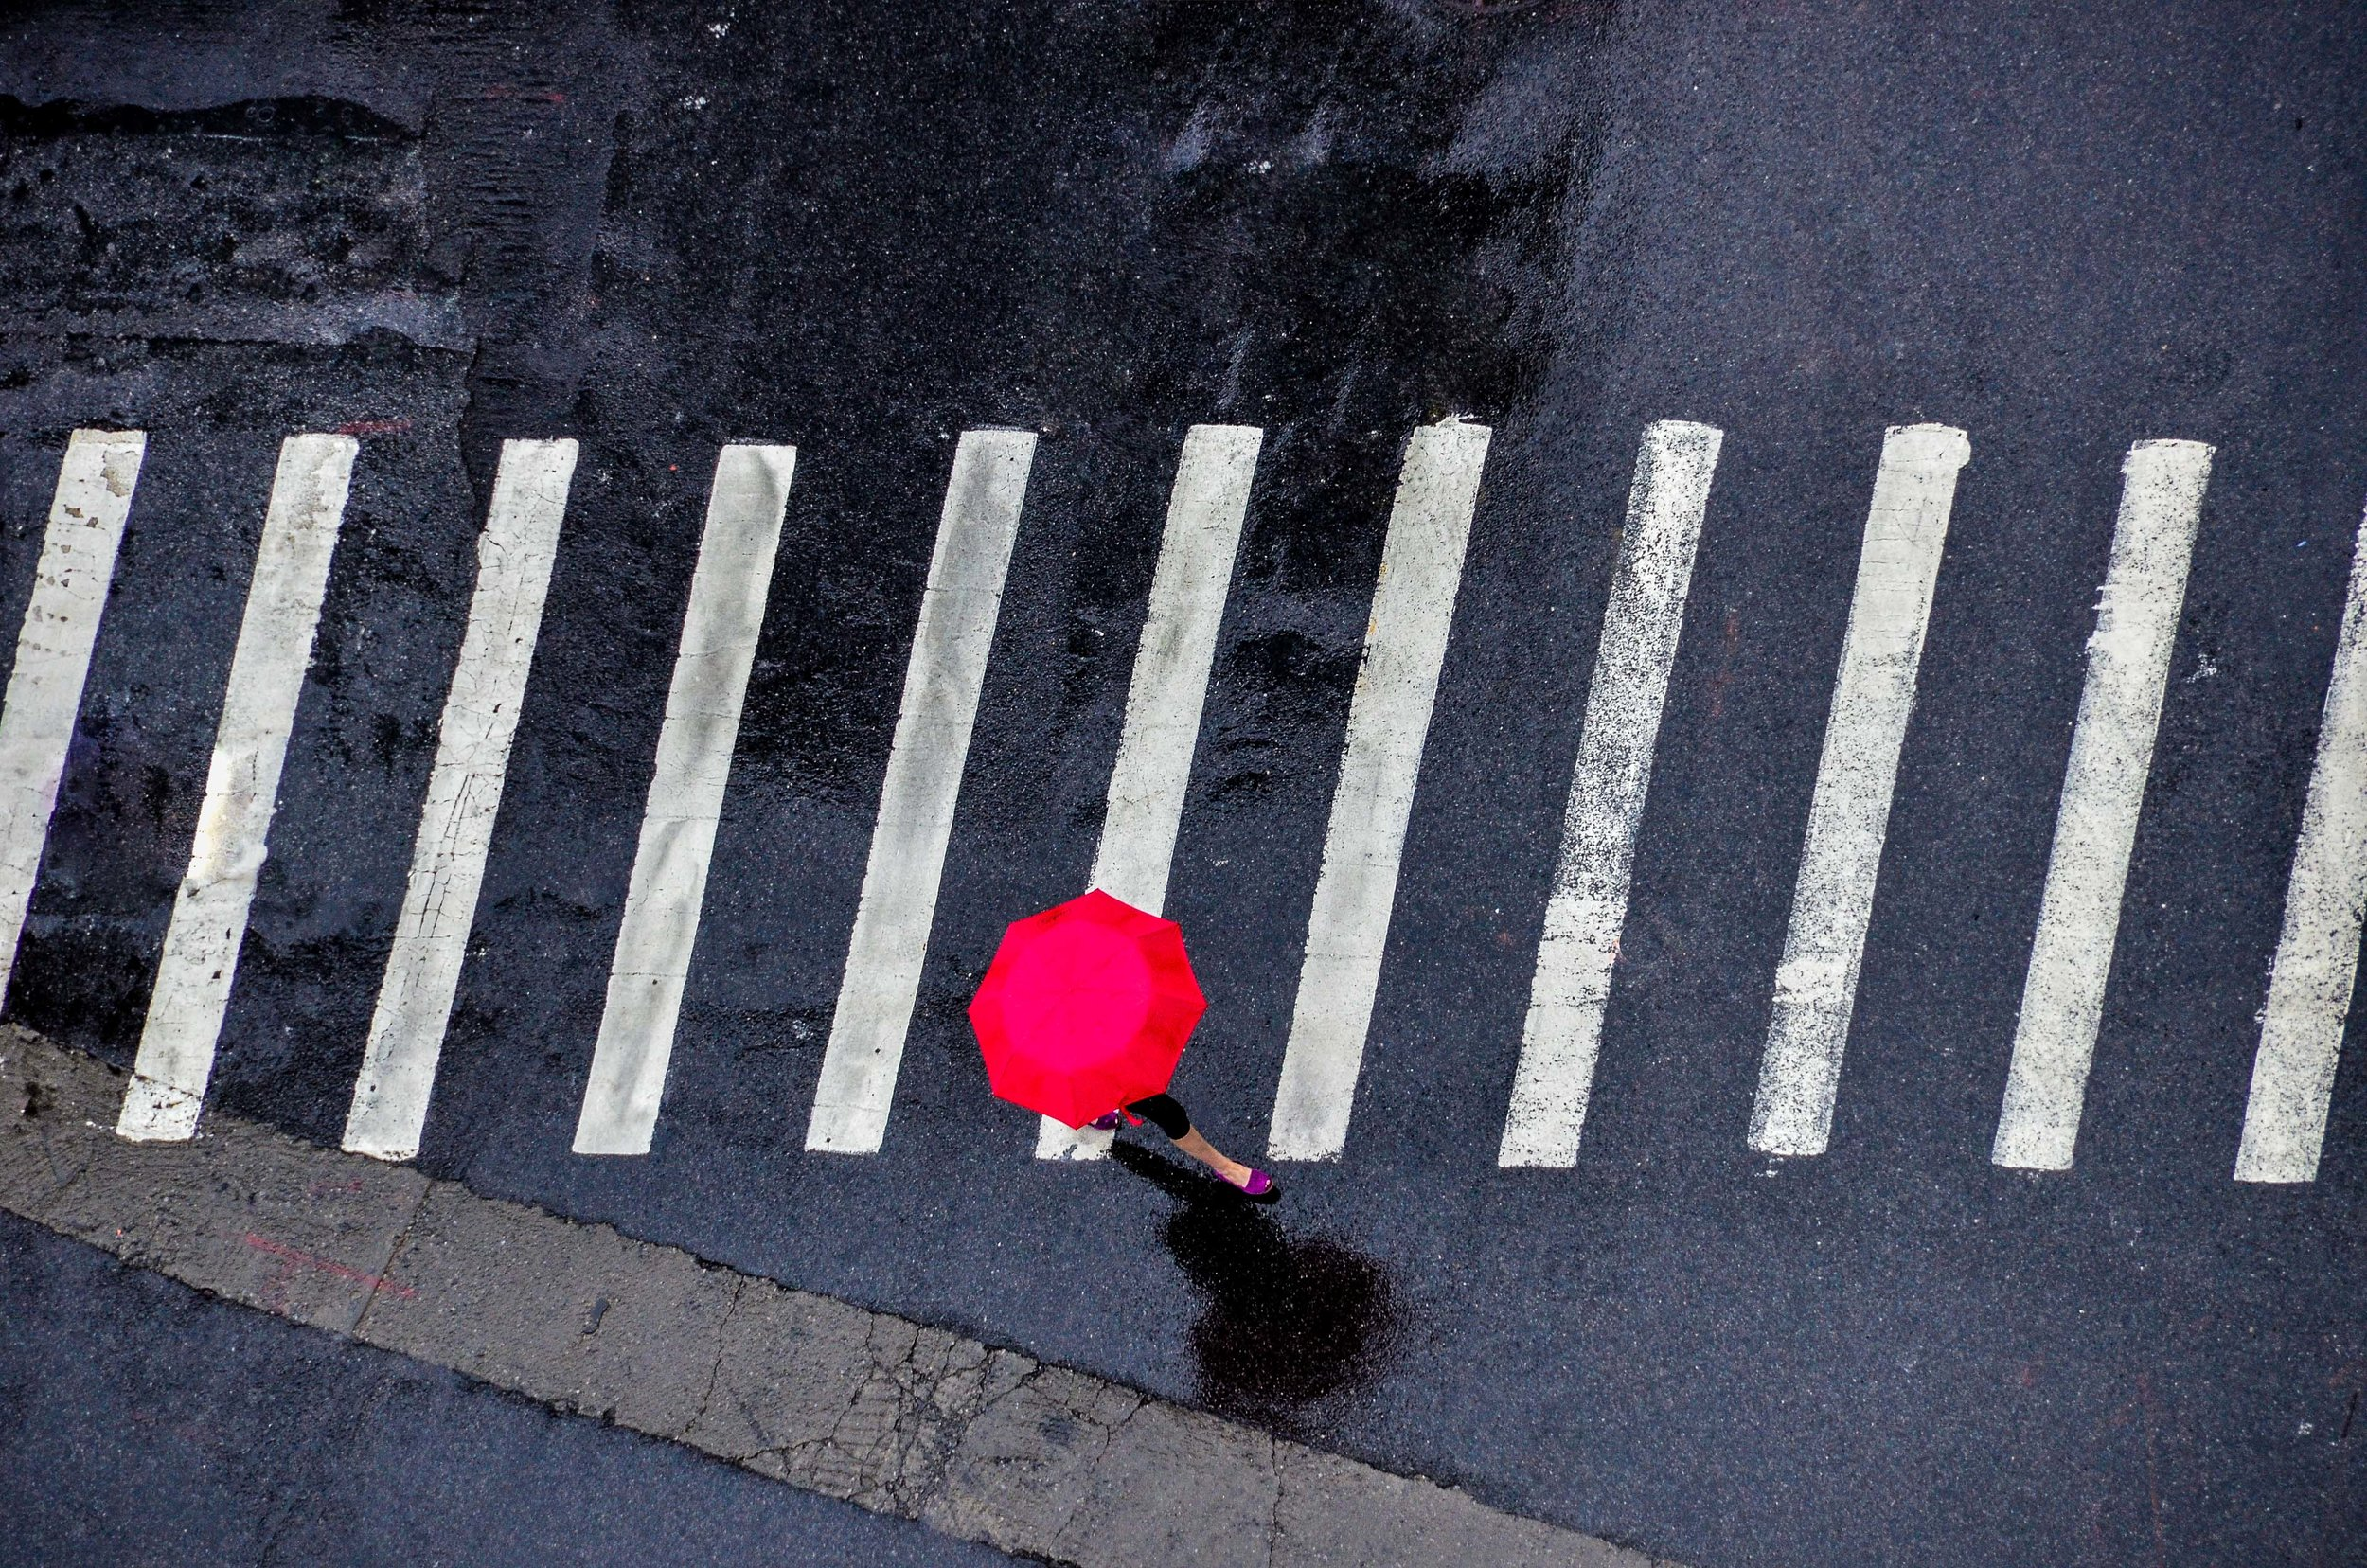 Red Umbrella. Manhattan, NY 2014